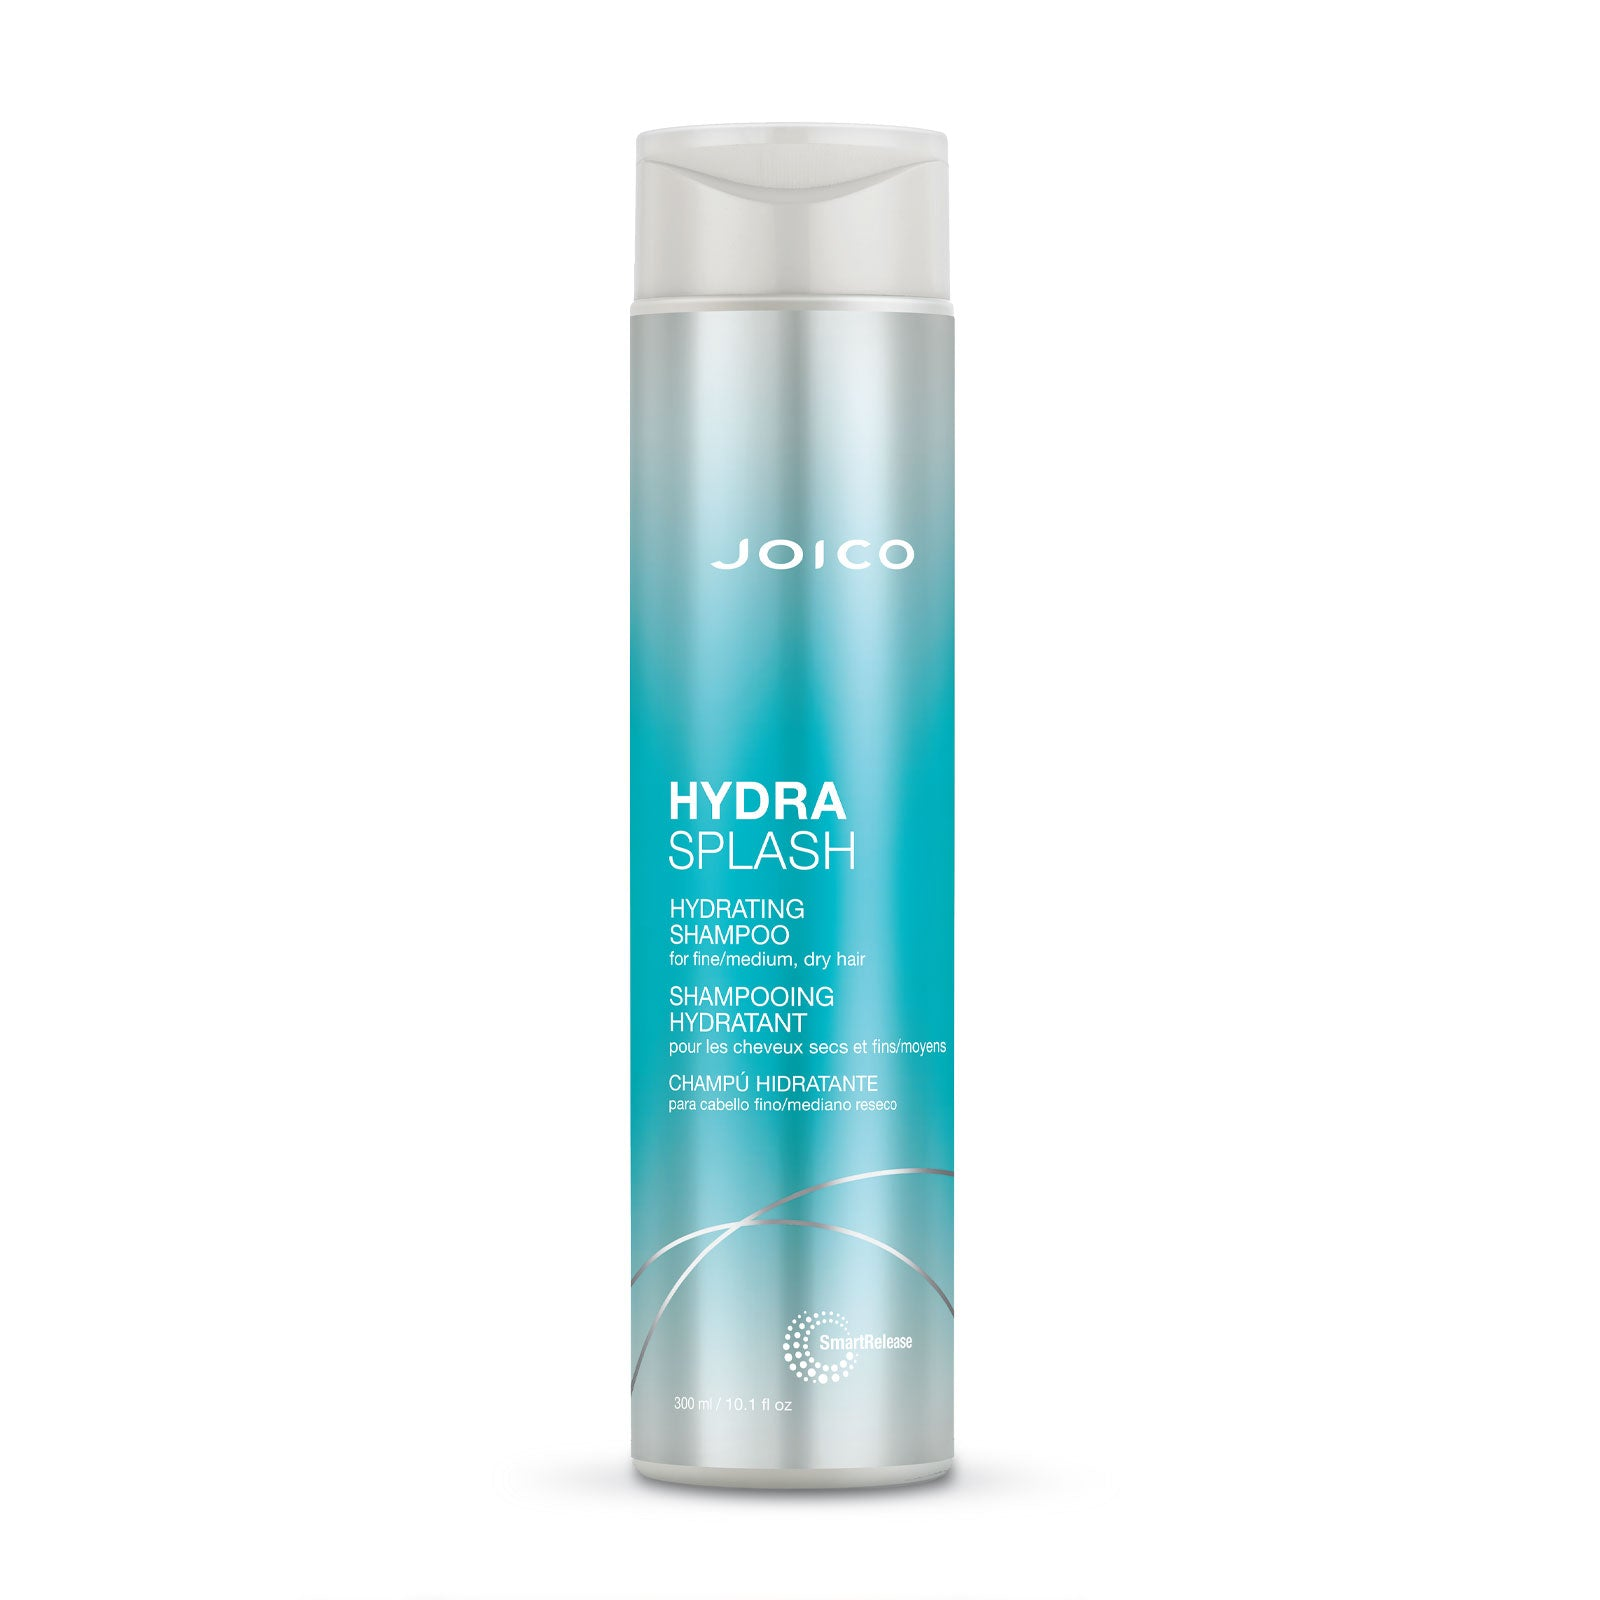 Joico Hydra Splash Hydrating Shampoo For Fine-Medium Dry Hair 300ml